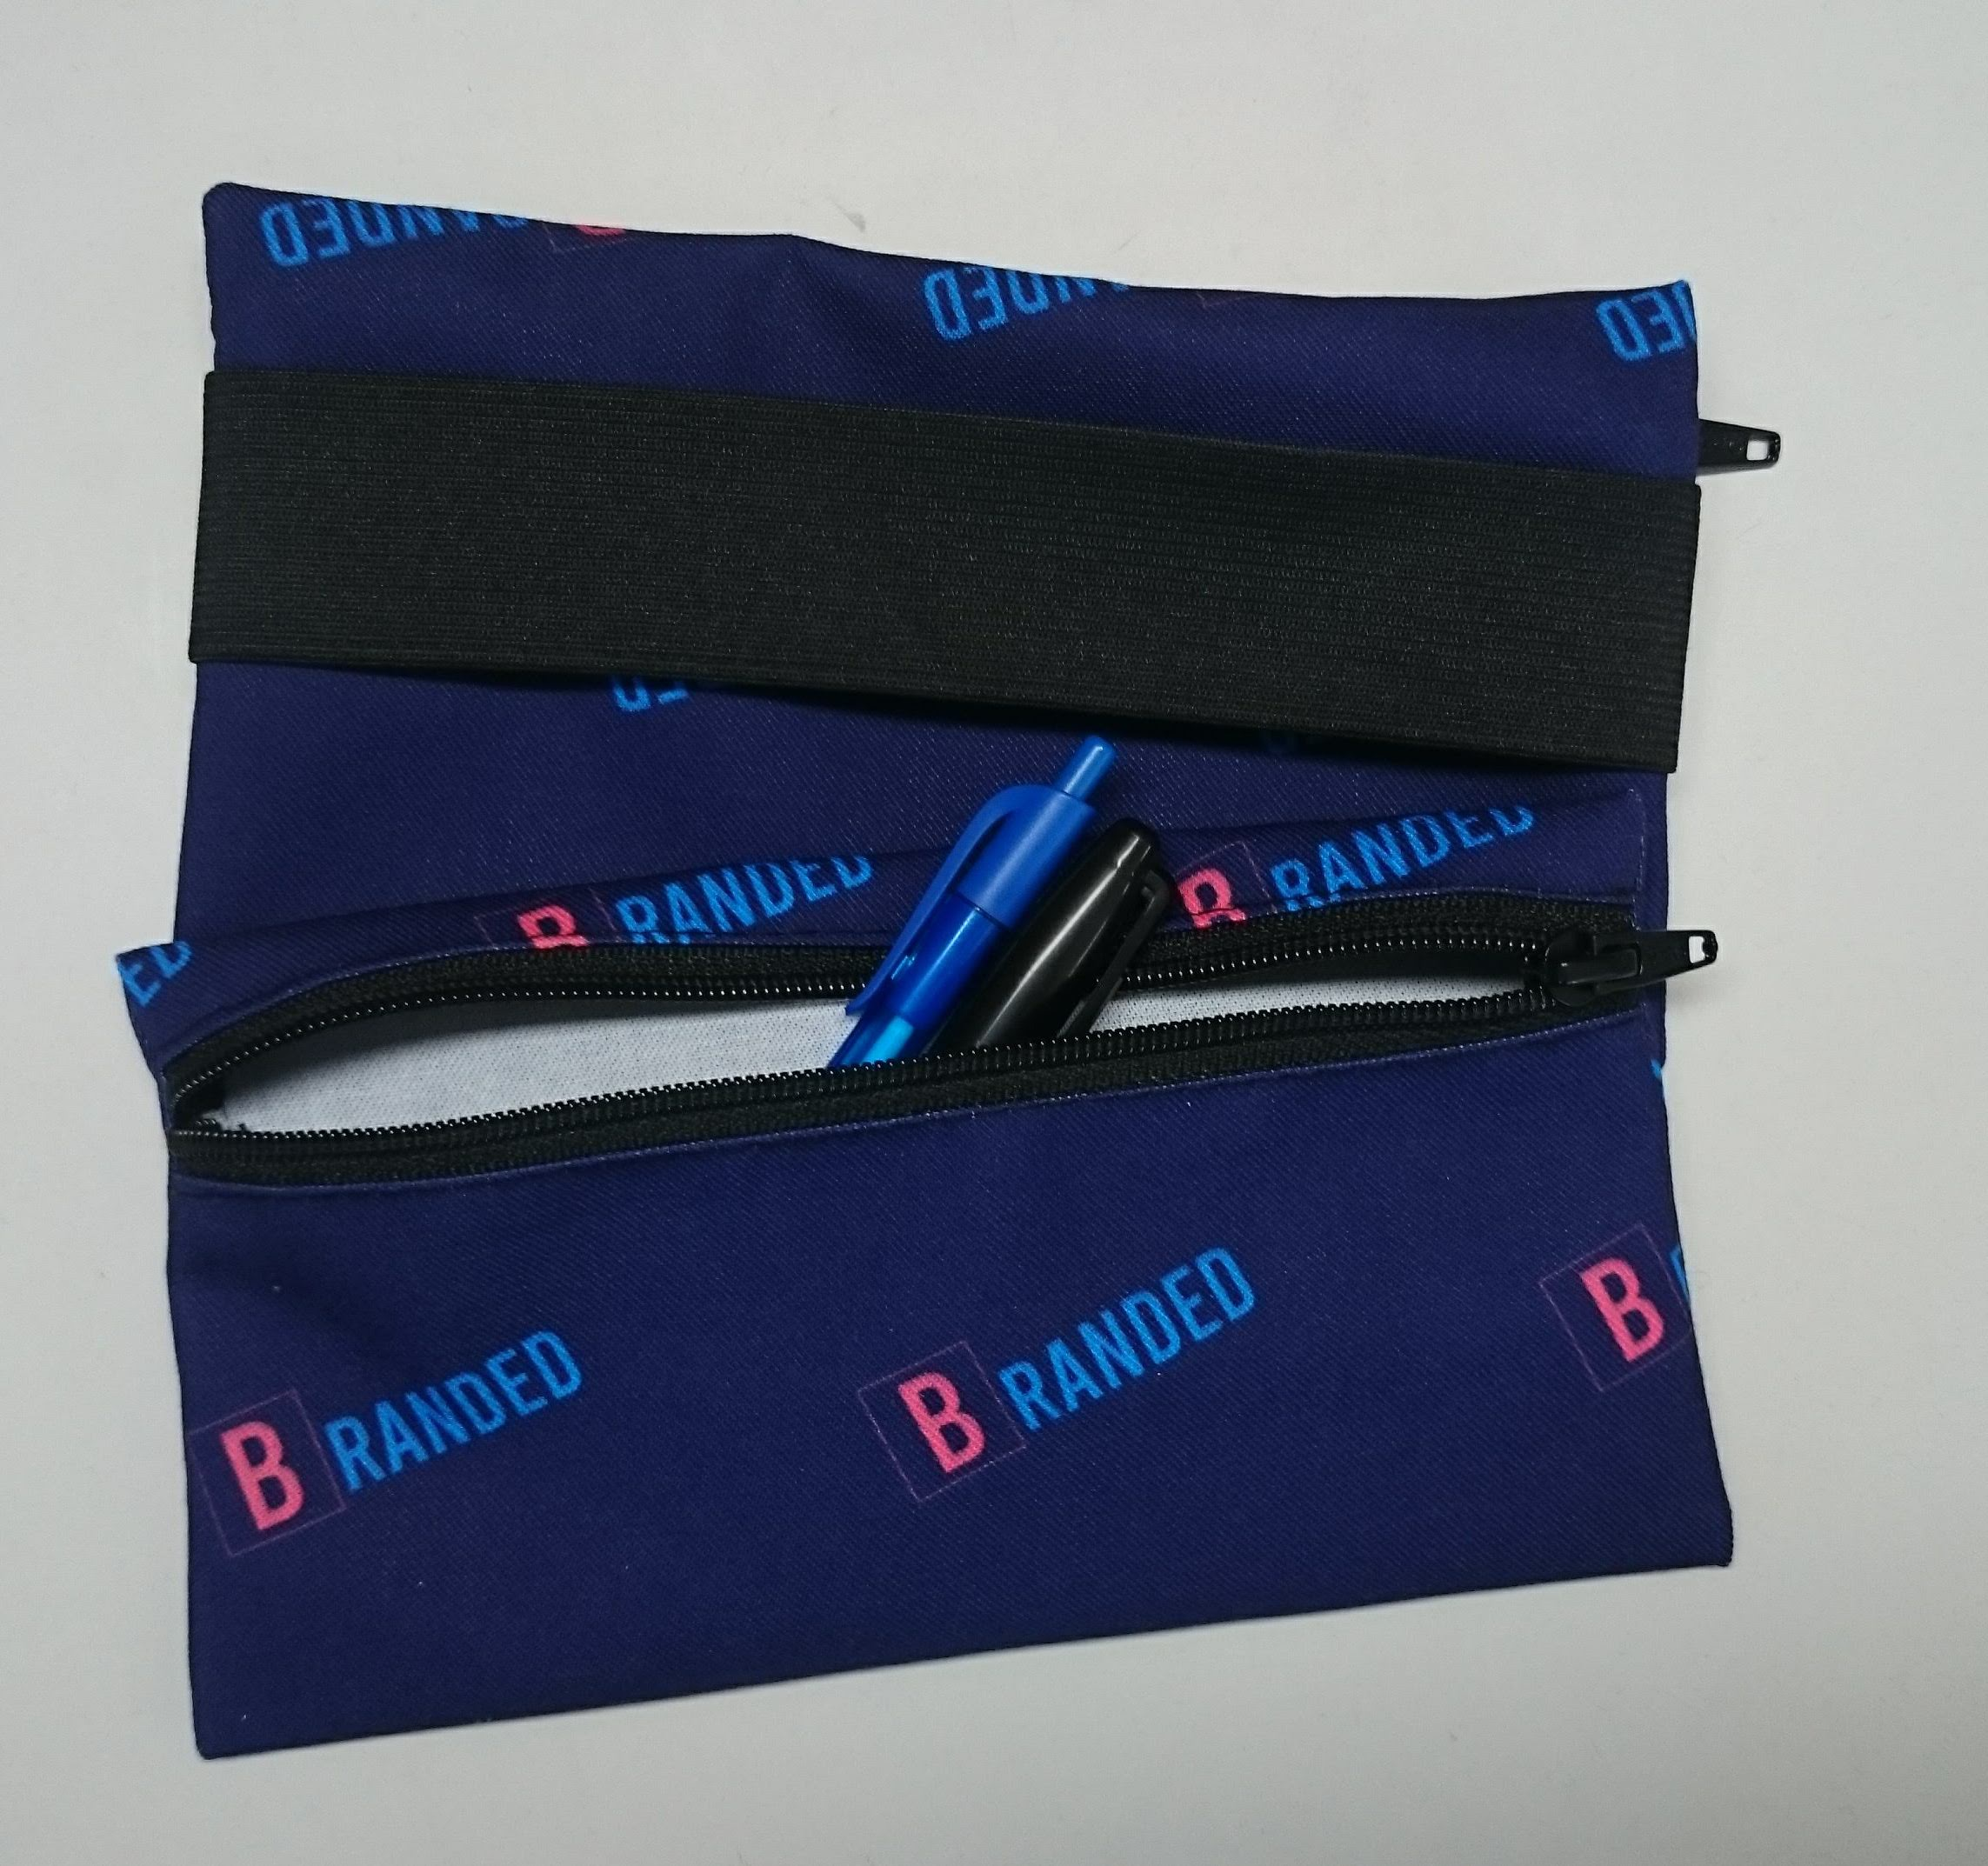 "Sublimated 8 1/4"" x 4"" zippered pencil case with elastic"